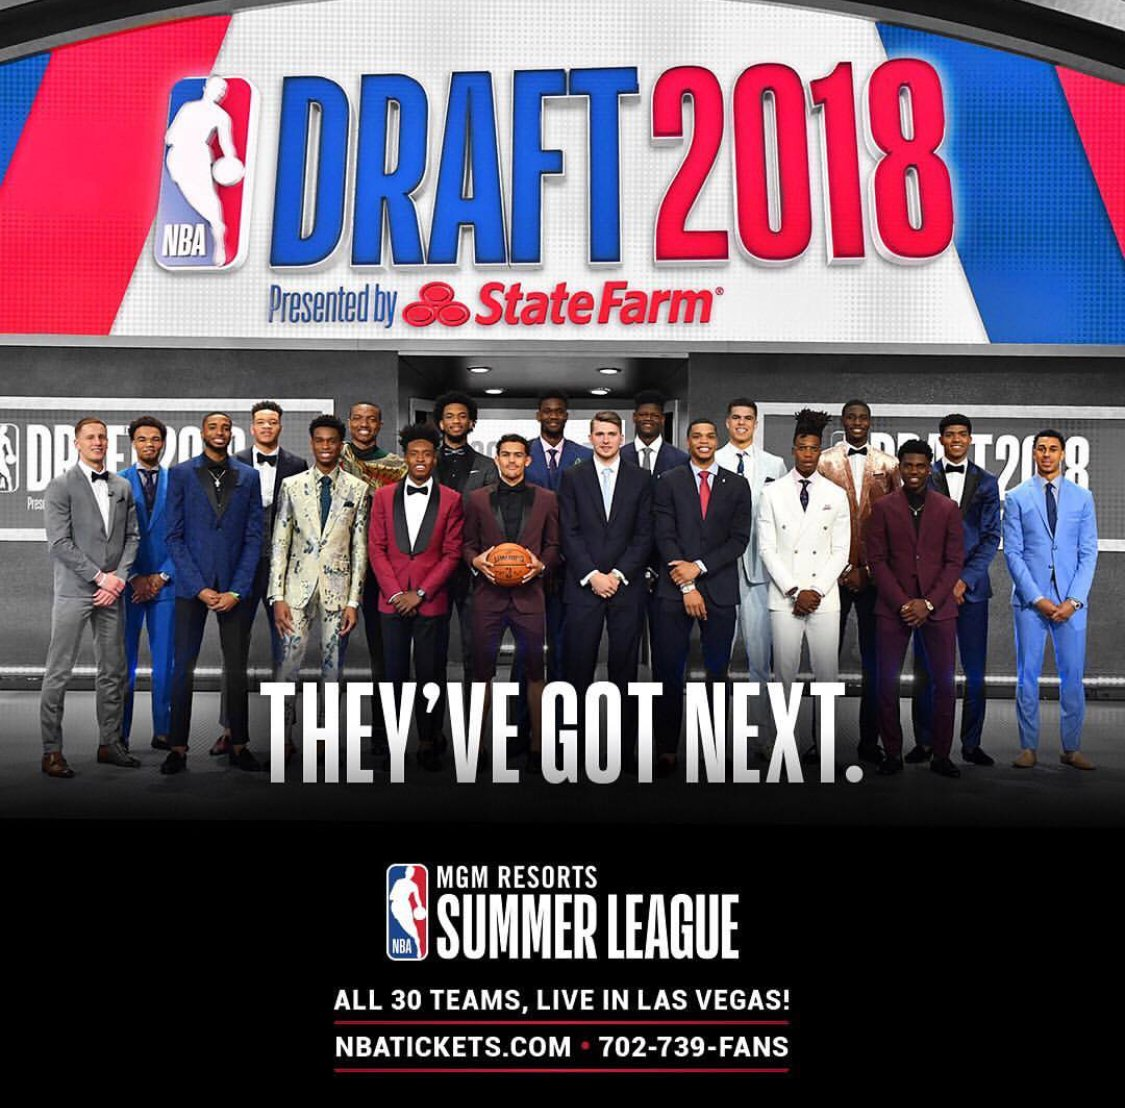 They've got next.. so see them first.. at the @NBASummerLeague in Las Vegas! https://t.co/FZAFEdI0LN #NBASummer https://t.co/jRt5cXh5qH